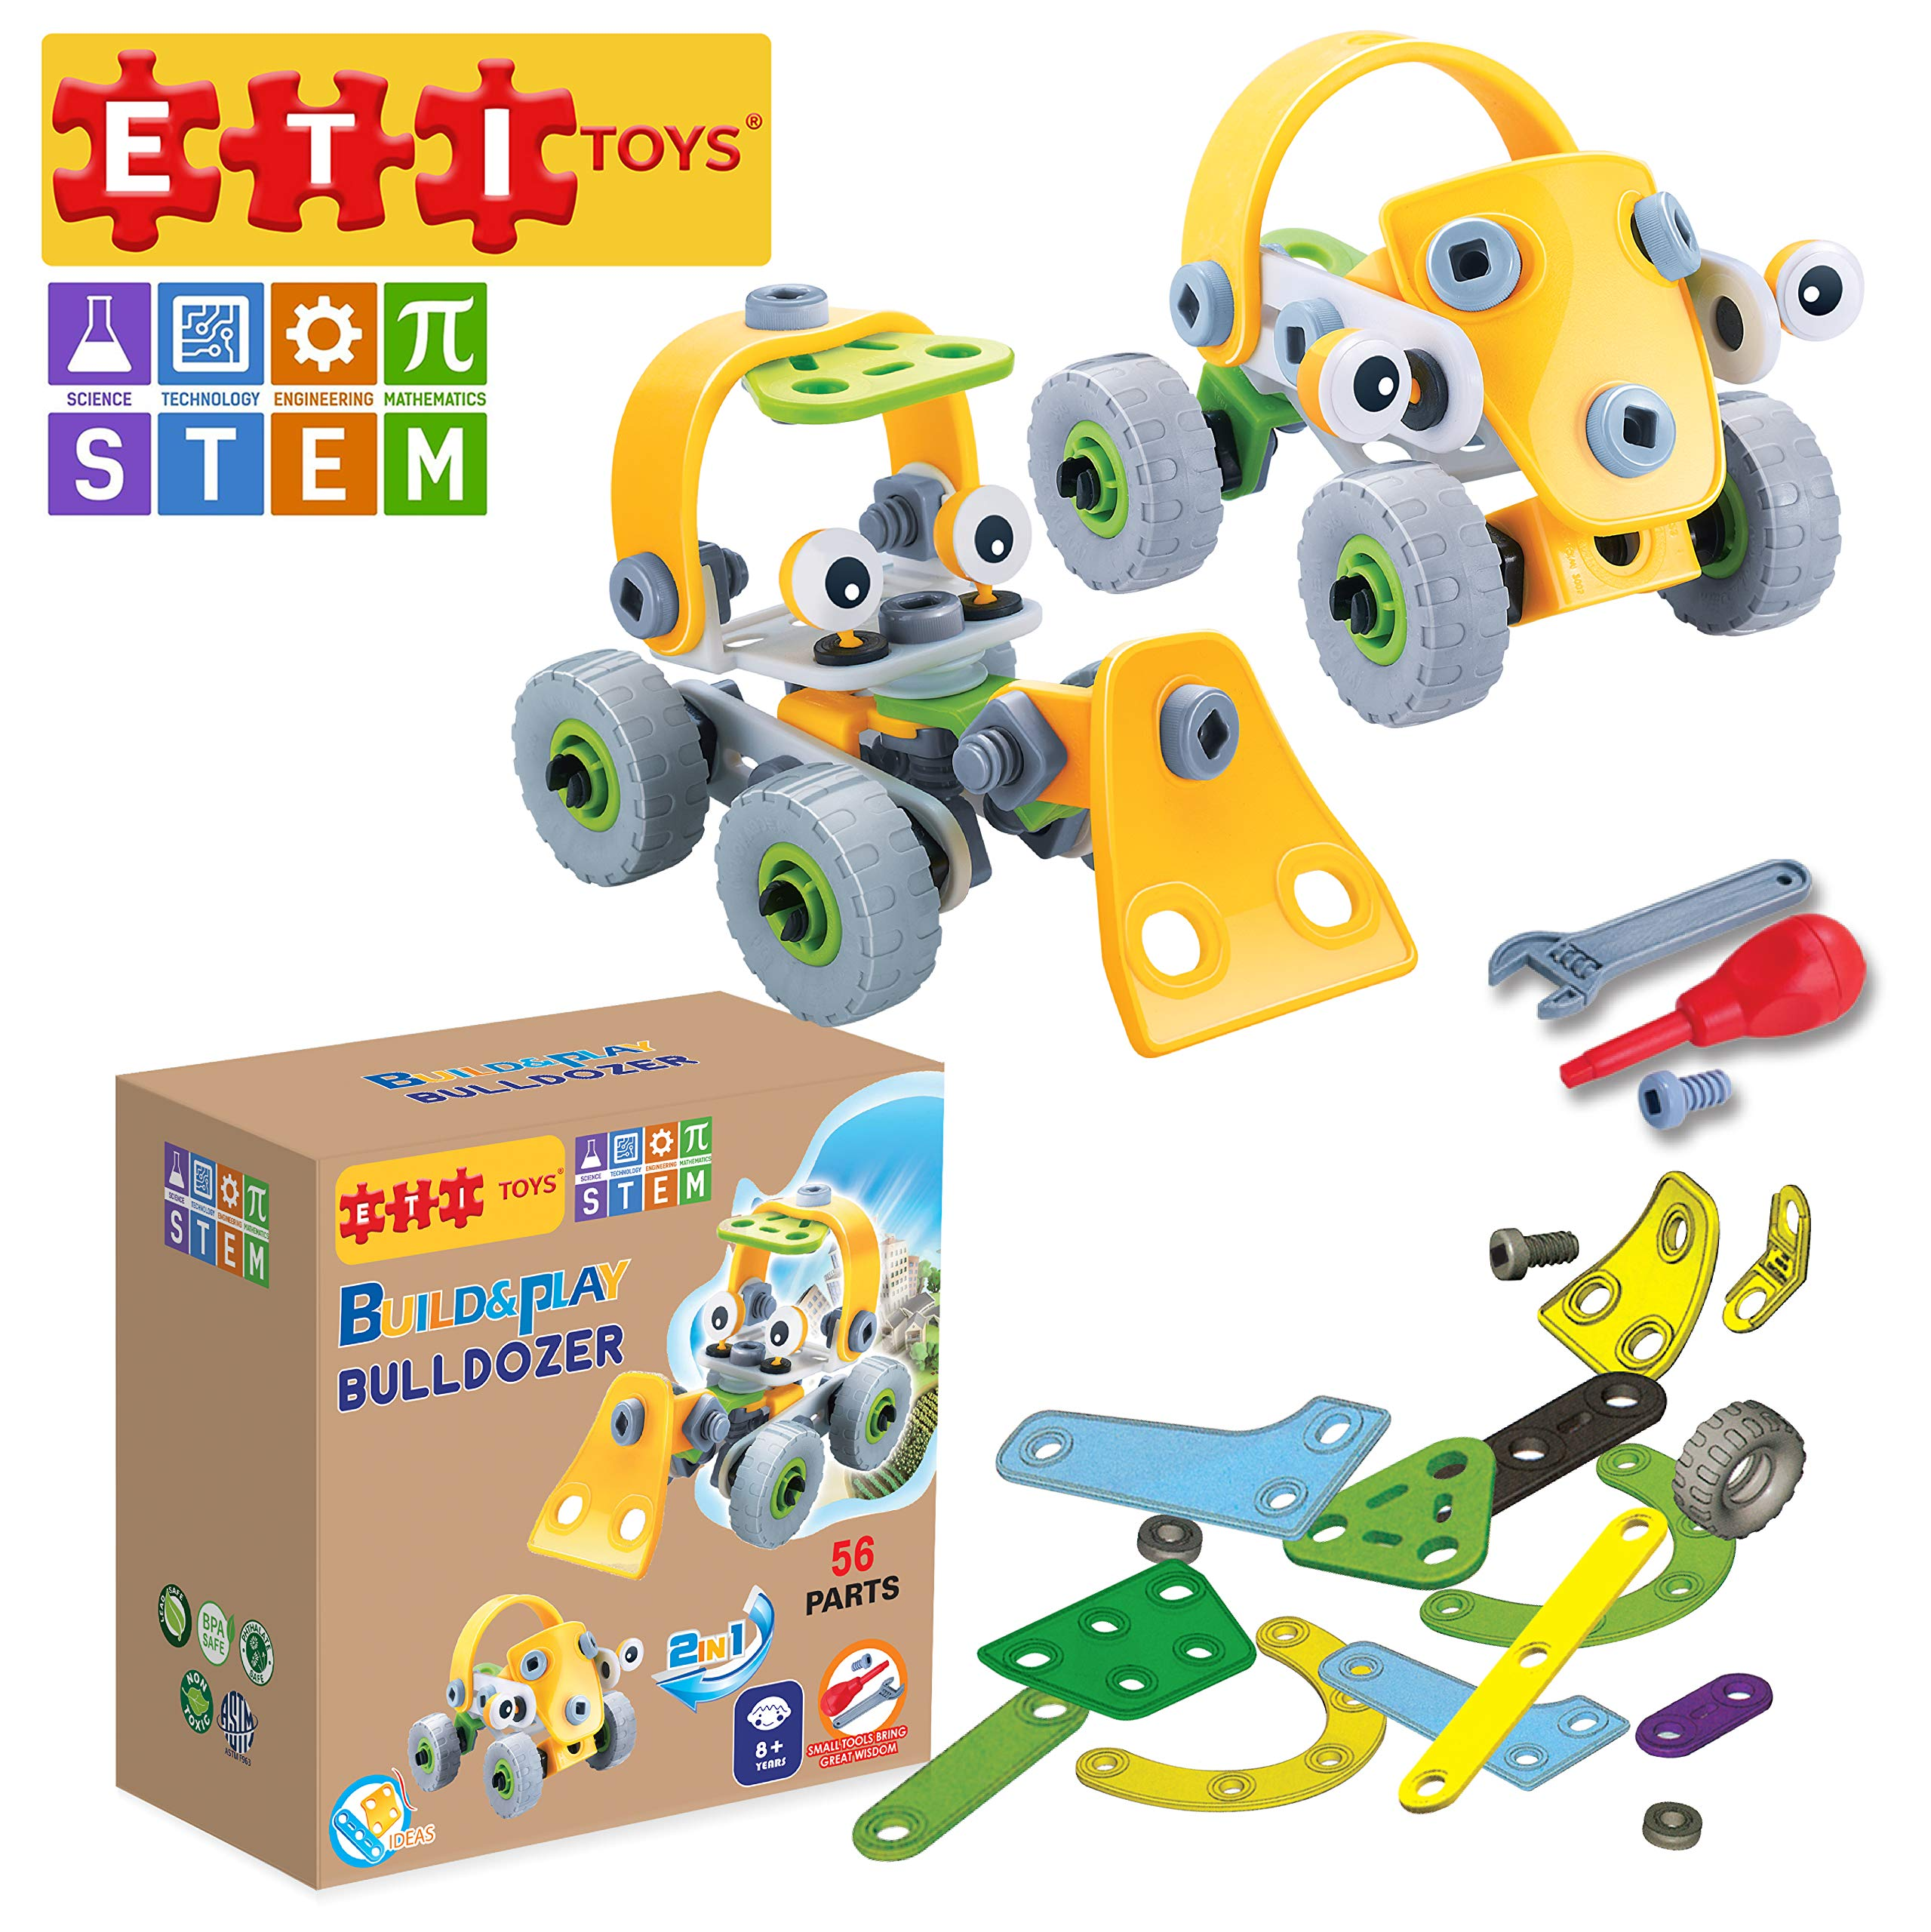 ETI Toys, STEM Learning, 56 Piece Lil Engineers Build & Play Bulldozer and Truck Building Blocks. 100 Percent Safe, Creative Skills Development. Gift, Toy for 8, 9, 10 Year Old Boys and Girls